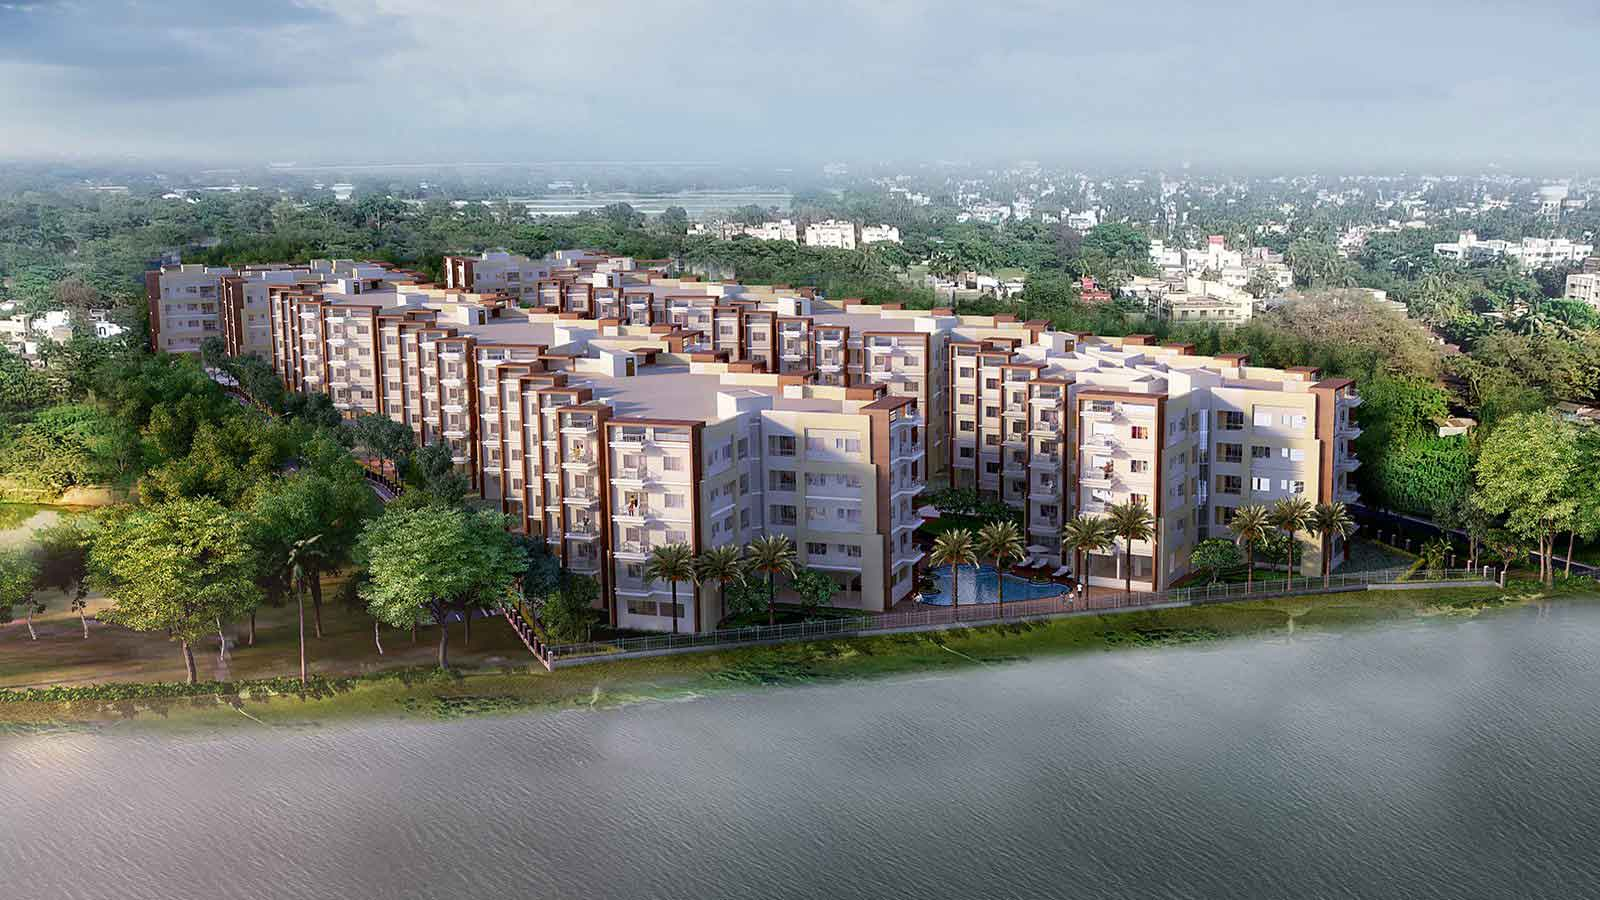 Rameswara Riverview Apartments by Ganges River